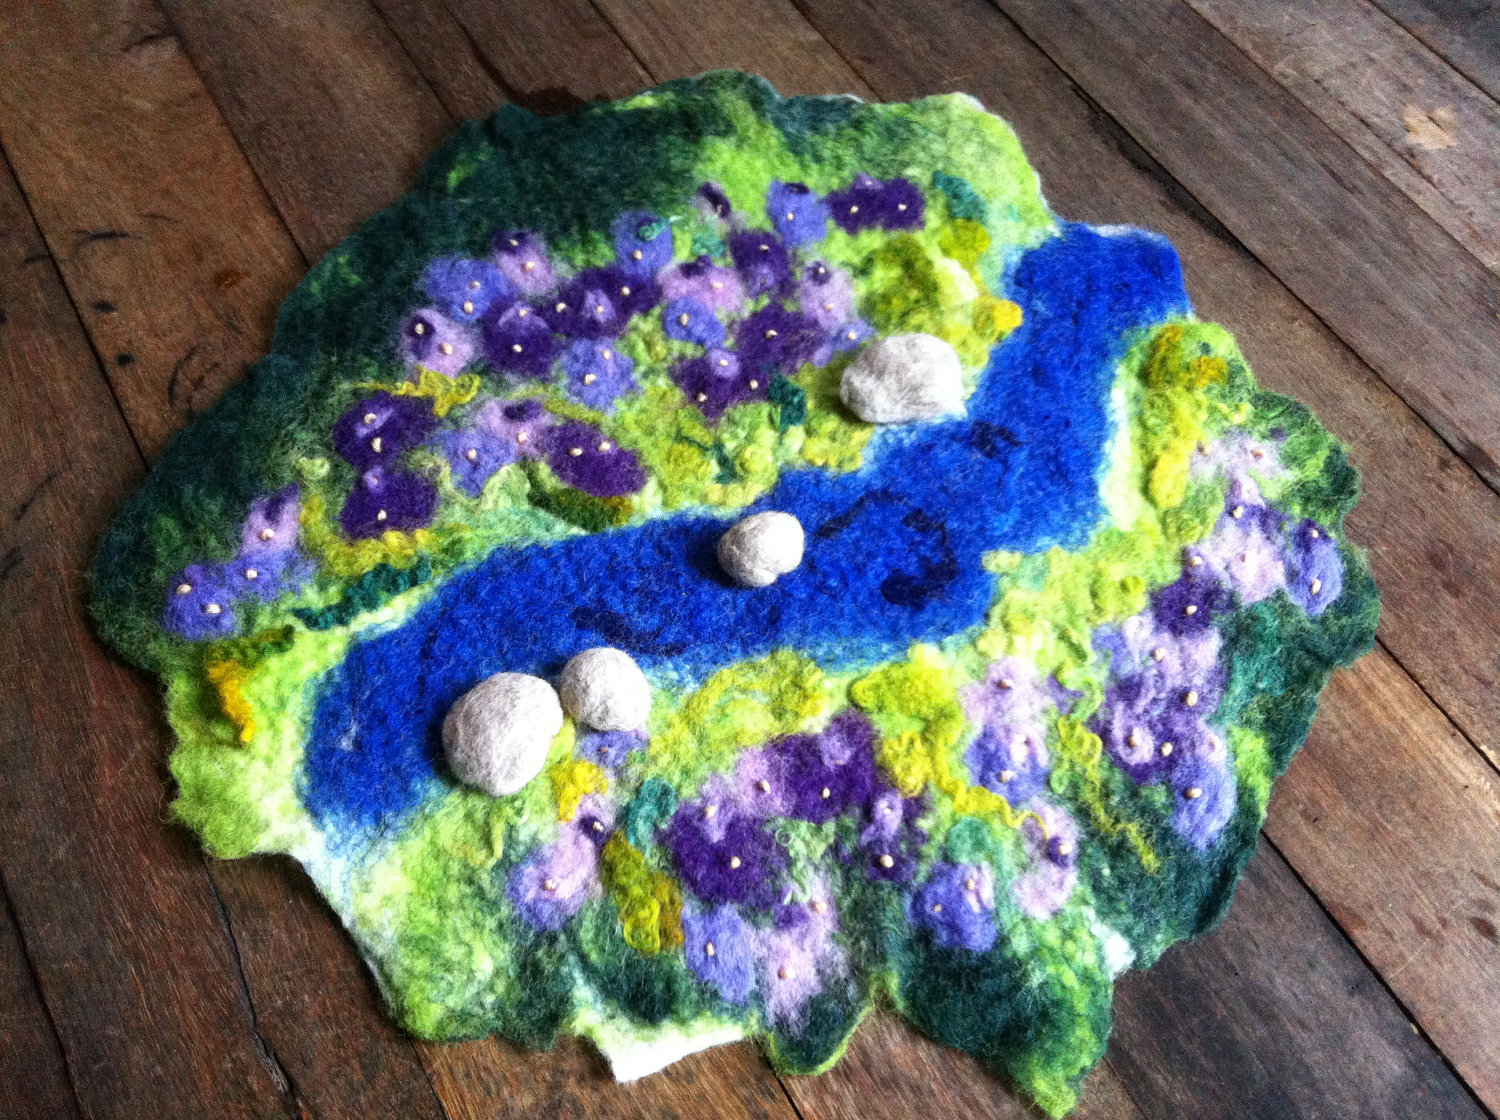 masajesaf on Etsy whole mat. Hand felted Waldorf Steiner Imaginative pretend play story mat wool felt silk nature woods field meadow stream rocks purple flowers